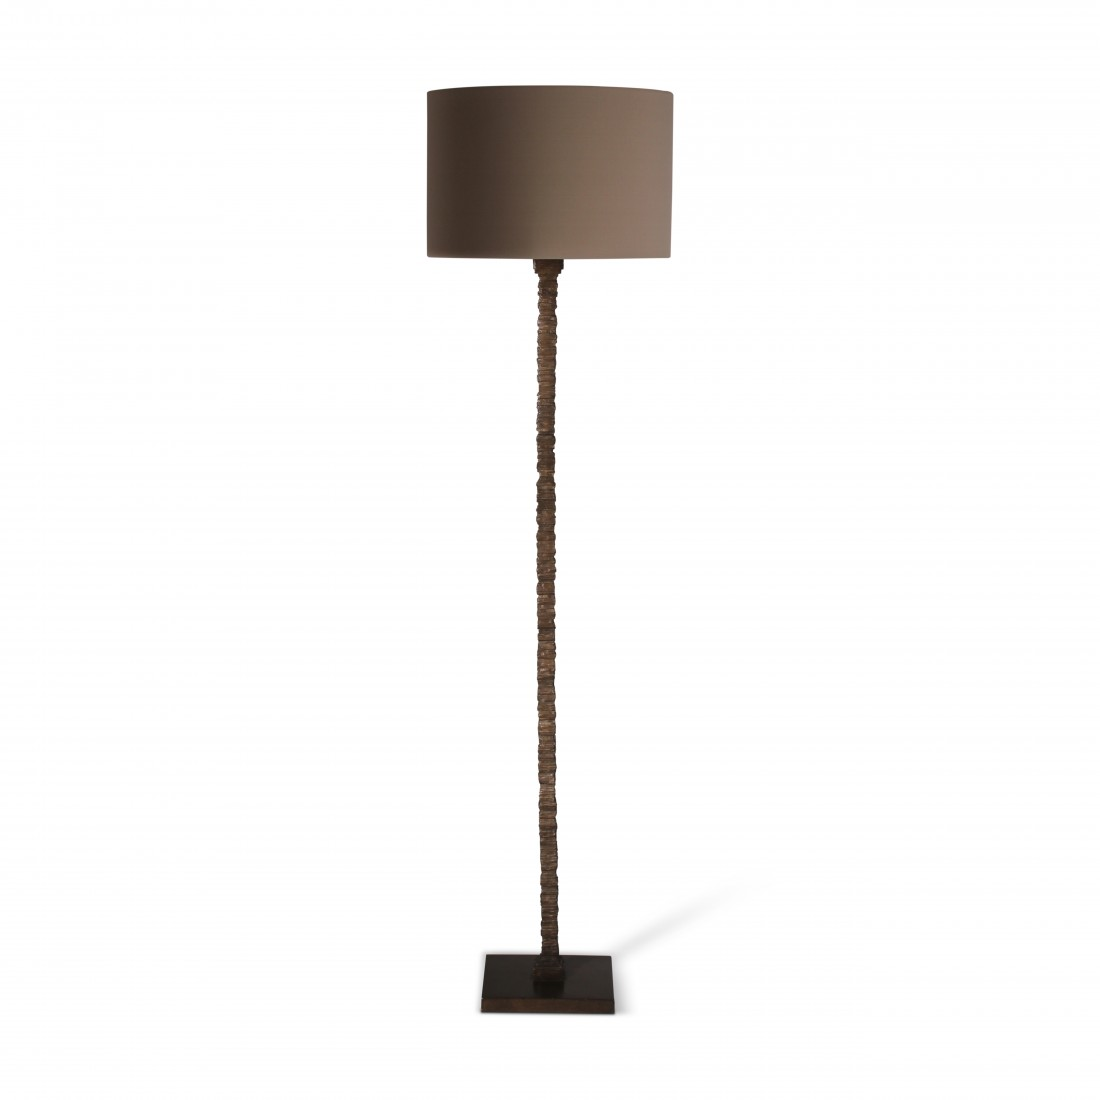 Floor lamps porta romana luxury lighting and furniture made static floor lamp aloadofball Image collections